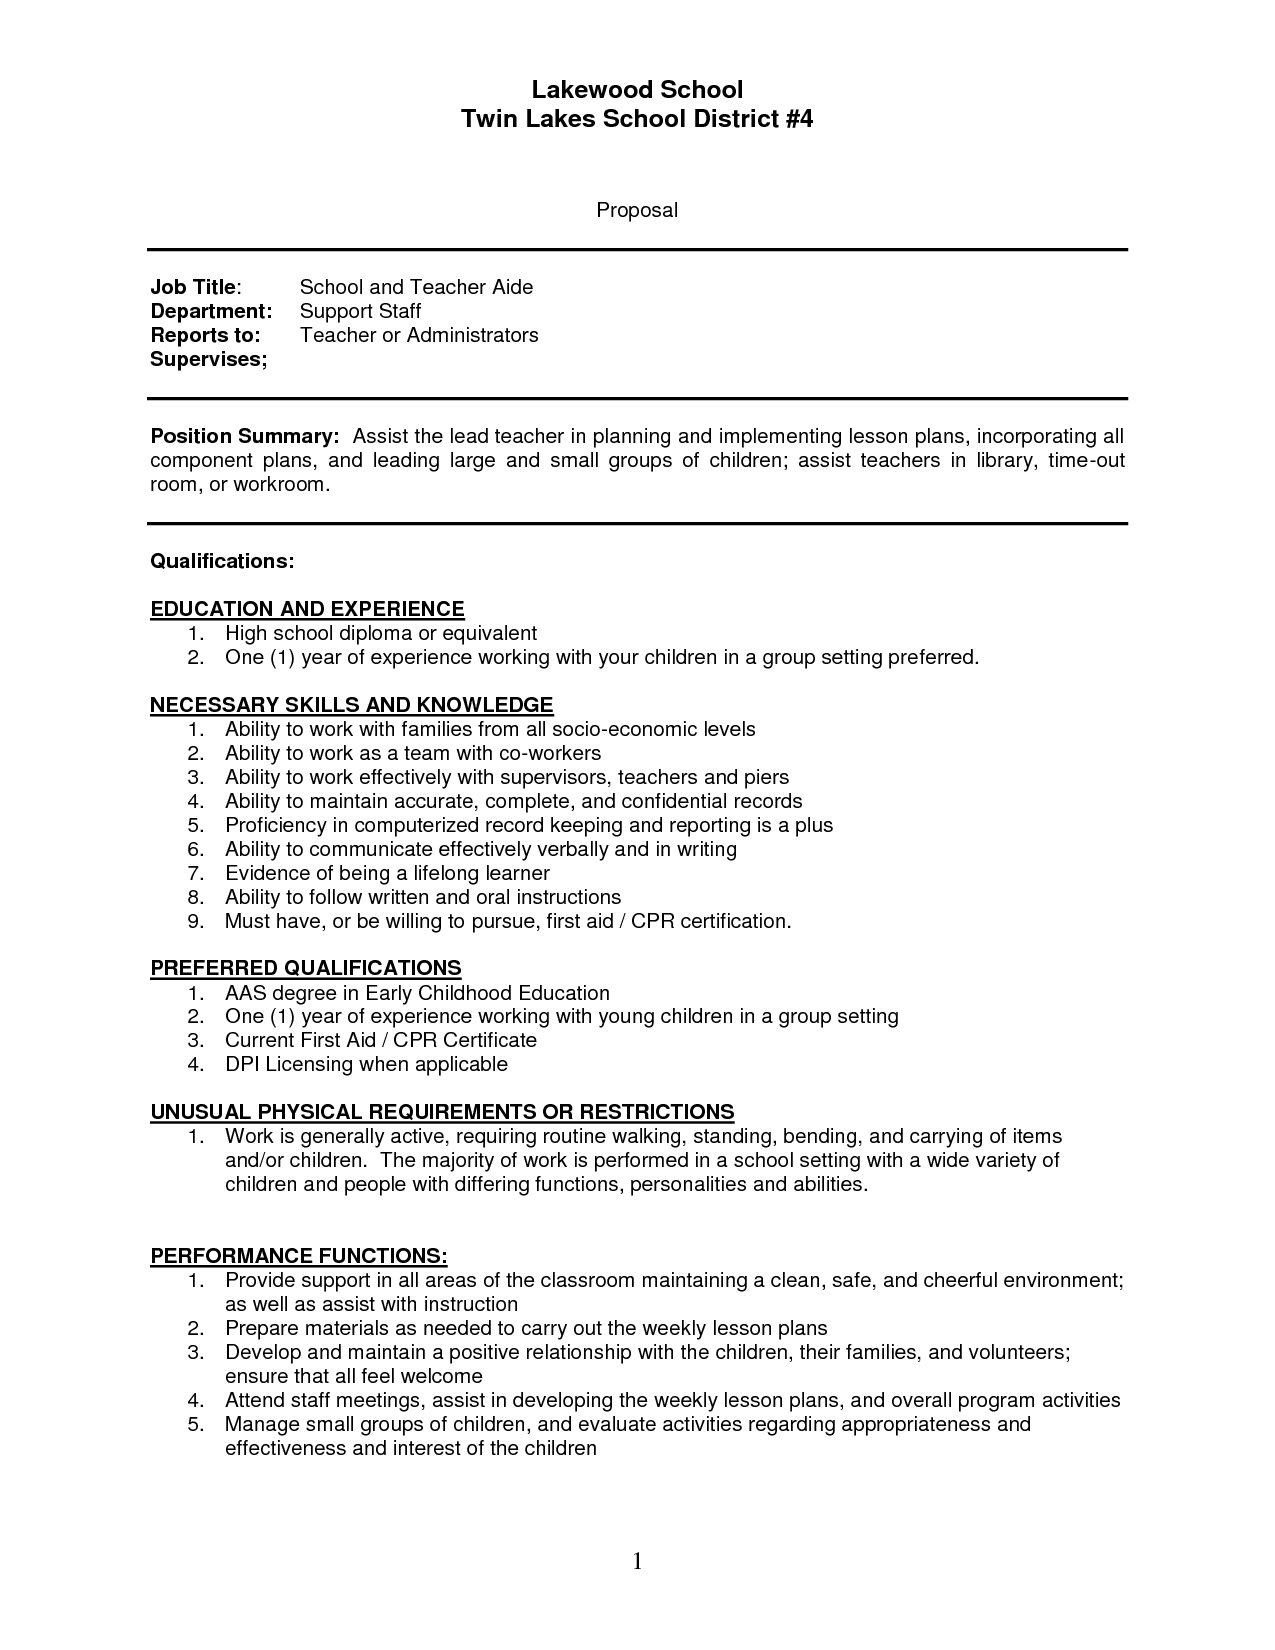 Tsm Administration Sample Resume Teacher Assistant Sample Resume Sample Resume Of Teachers Aides